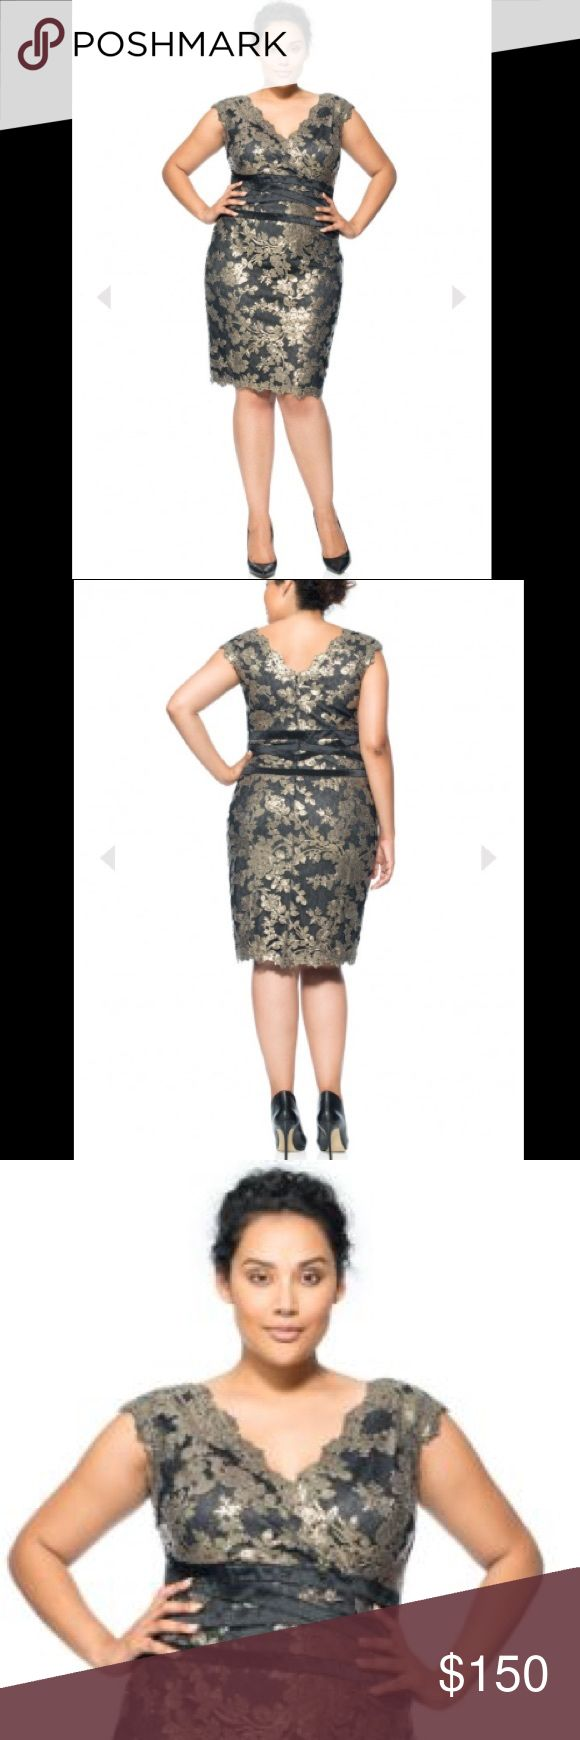 """NEW $368 PAILLETTE EMBROIDERED LACE BANDED DRESS NEW With Tags $368 PAILLETTE EMBROIDERED LACE BANDED DRESS SIZE 22Q  Featuring a sexy V-neck and sparkly paillette-embroidered lace, this romantic sequin number is an eye-catching cocktail choice. A fitted silhouette & banding at the waist add a modern, waist-defining touch. All that's needed is a smoky eye and black stilettos. Color: Smoke Pearl / Black Approx. Length from Shoulder is 40"""" Dry Clean Tadashi Shoji Dresses Midi"""